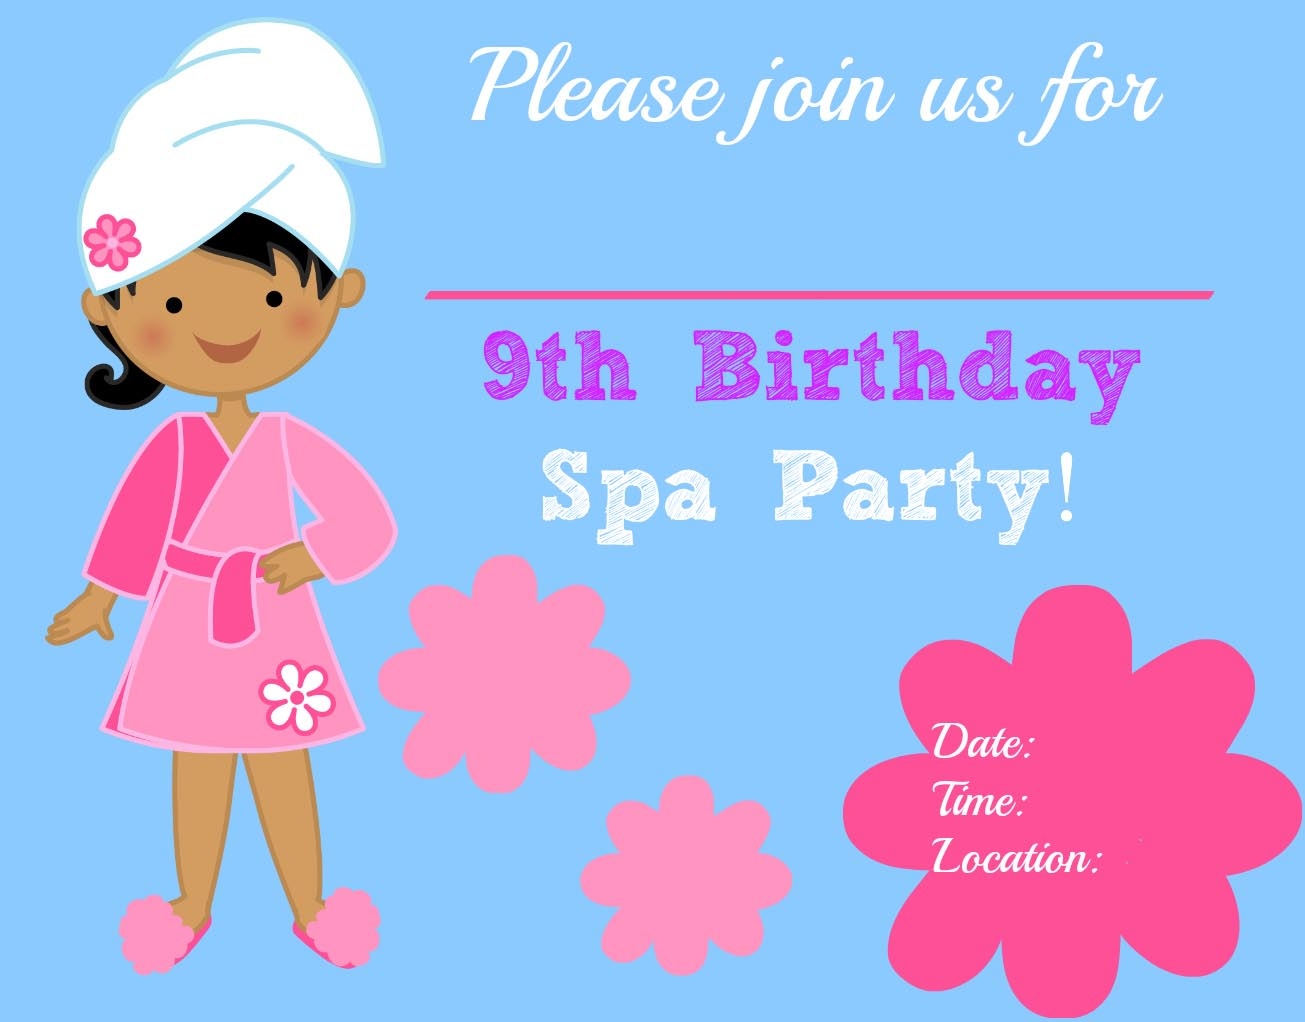 doc 550413 kids party invitations to print birthday party printable party invitations for kids birthday parties kids party invitations to print